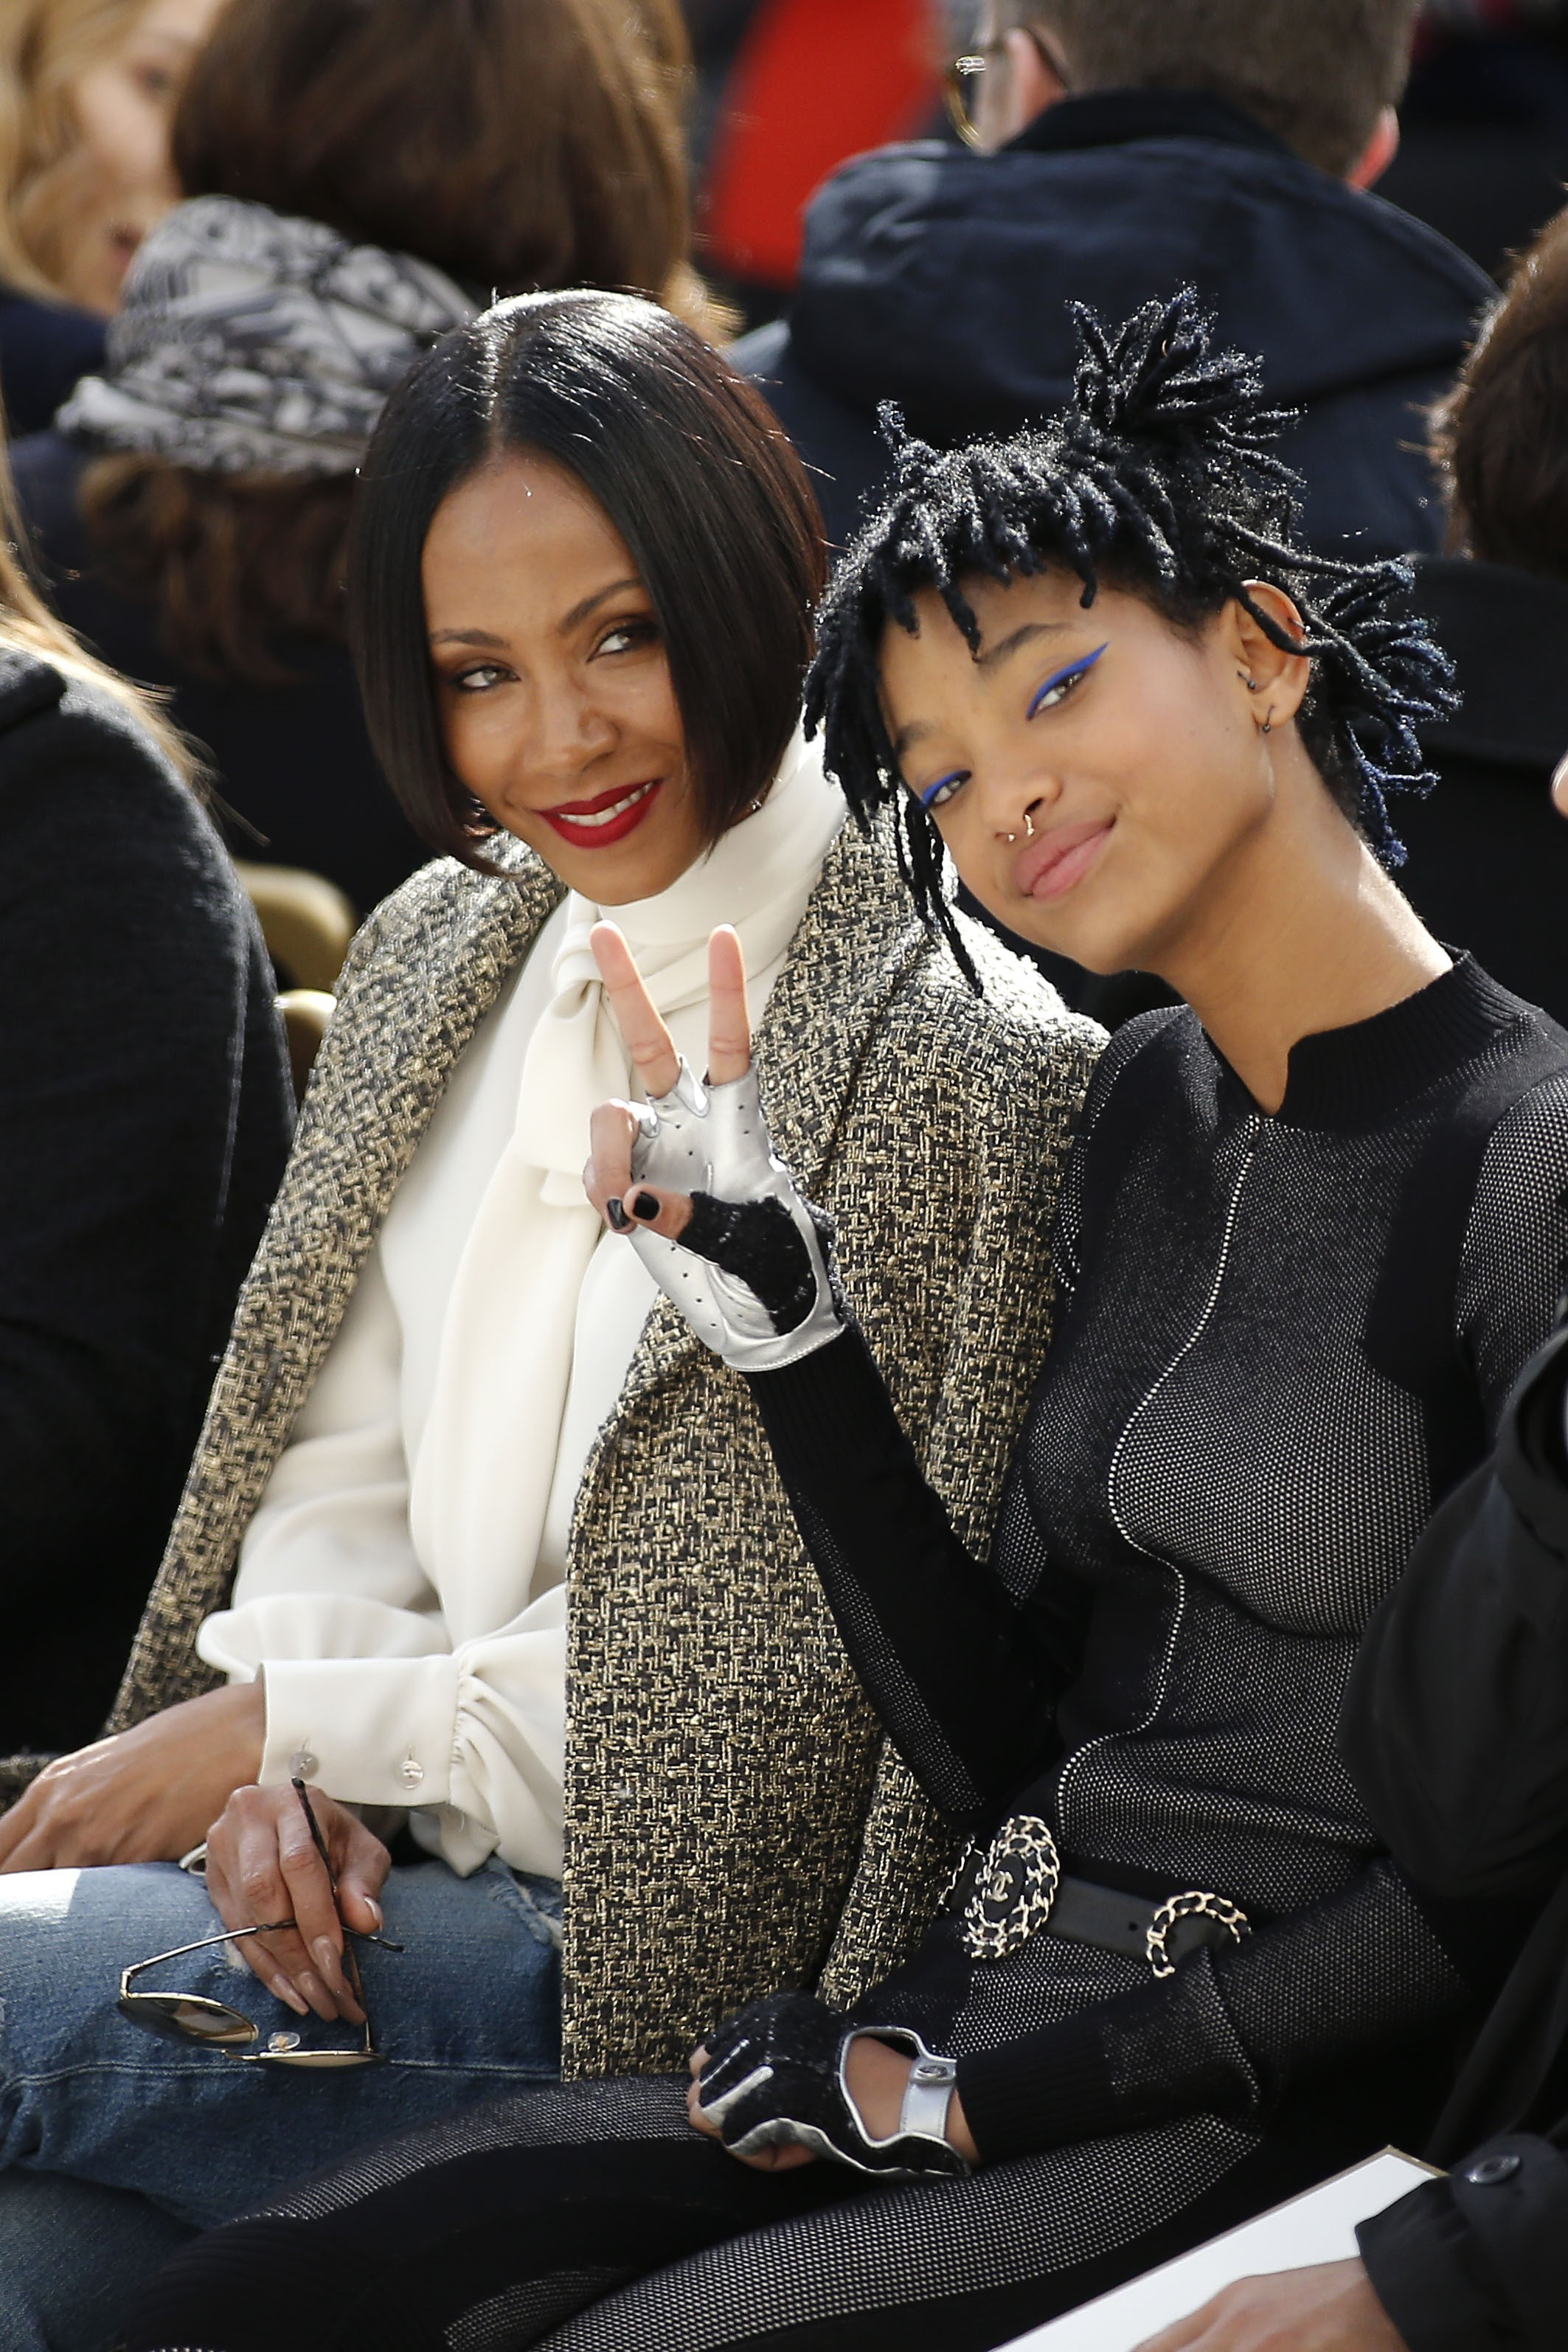 Jada Pinkett Smith and Willow Smith sit in the front row at the Chanel Fashion Show in Paris on March 8, 2016.